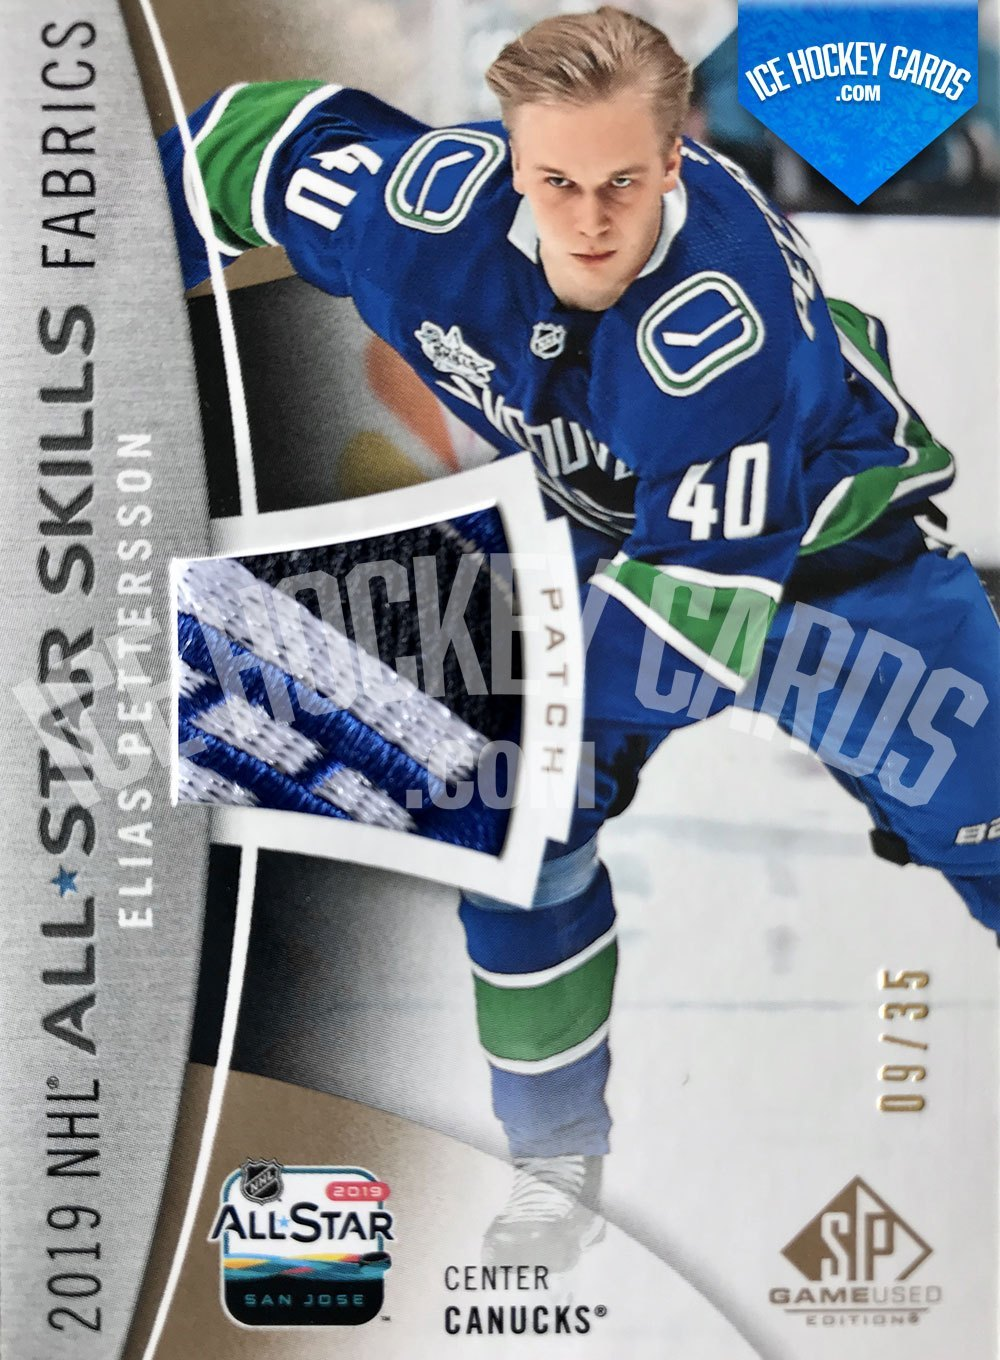 Upper Deck - SP Game Used Hockey 2019-20 - Elias Pettersson 2019 NHL All-Star Skills Fabrics Trading Card 9 to 25 RARE